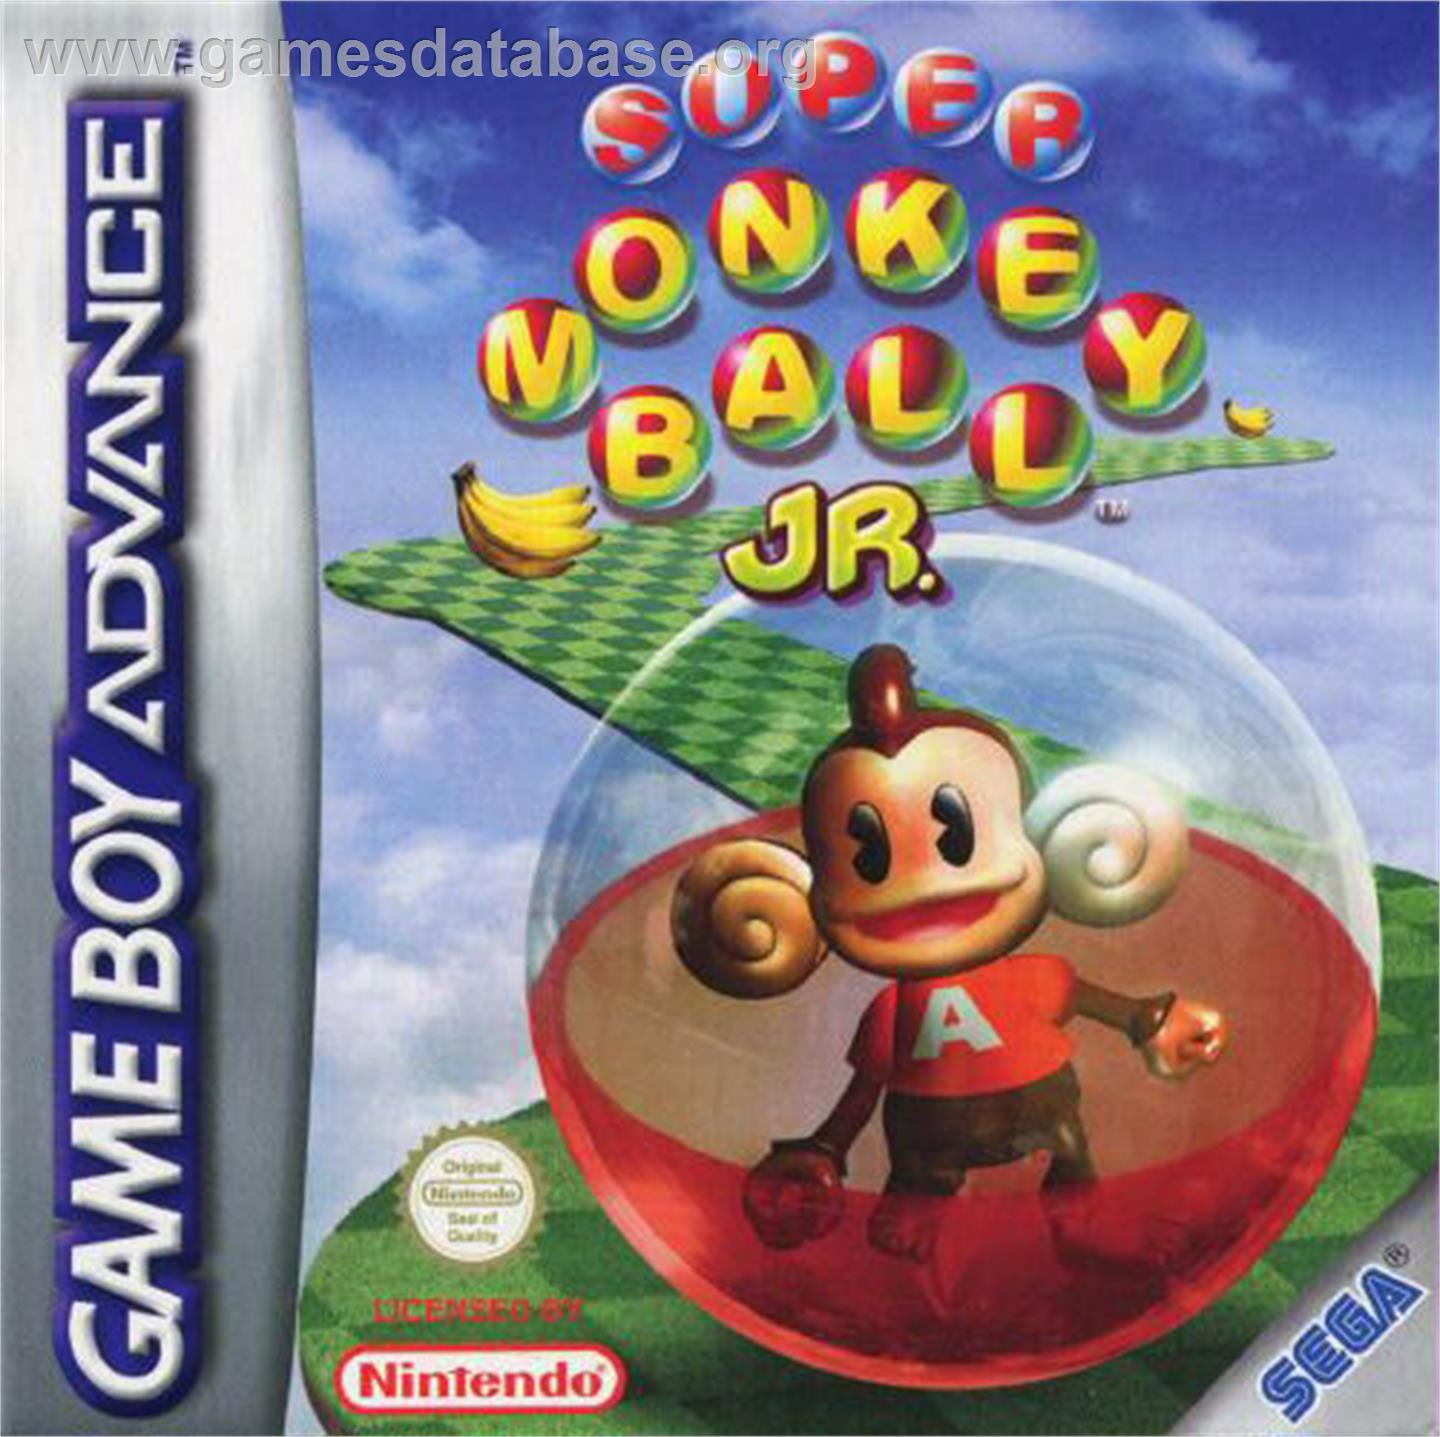 Super Monkey Ball Jr. - Nintendo Game Boy Advance - Artwork - Box